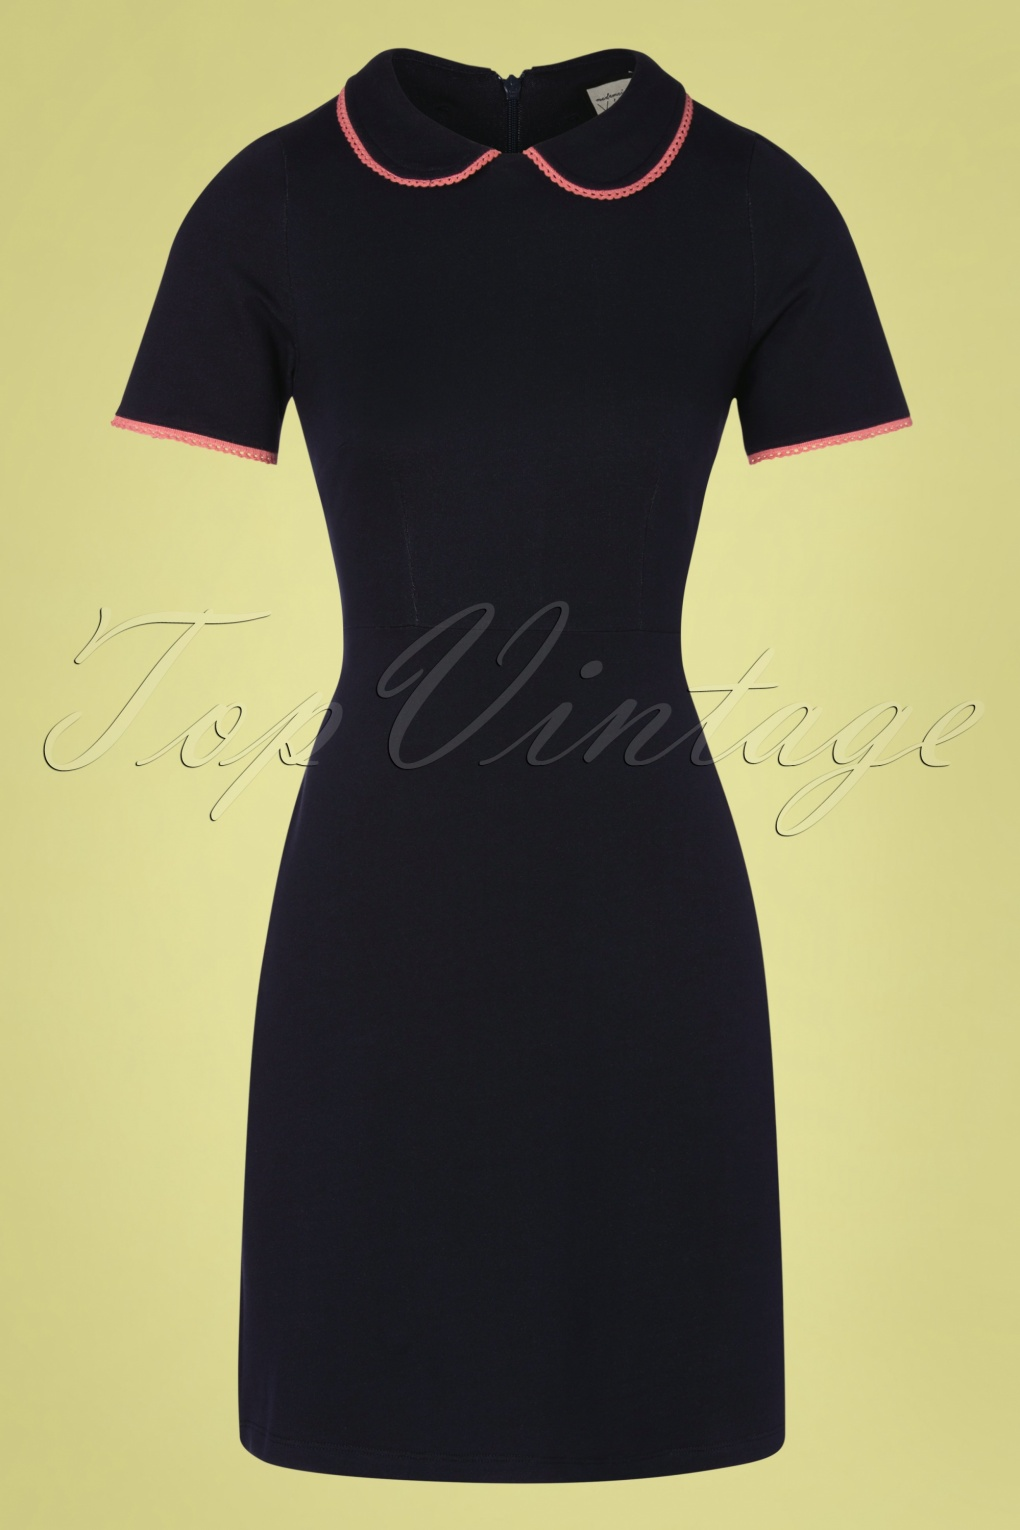 500 Vintage Style Dresses for Sale | Vintage Inspired Dresses 60s Pretty Me Dress in Denim Navy and Pink £96.47 AT vintagedancer.com